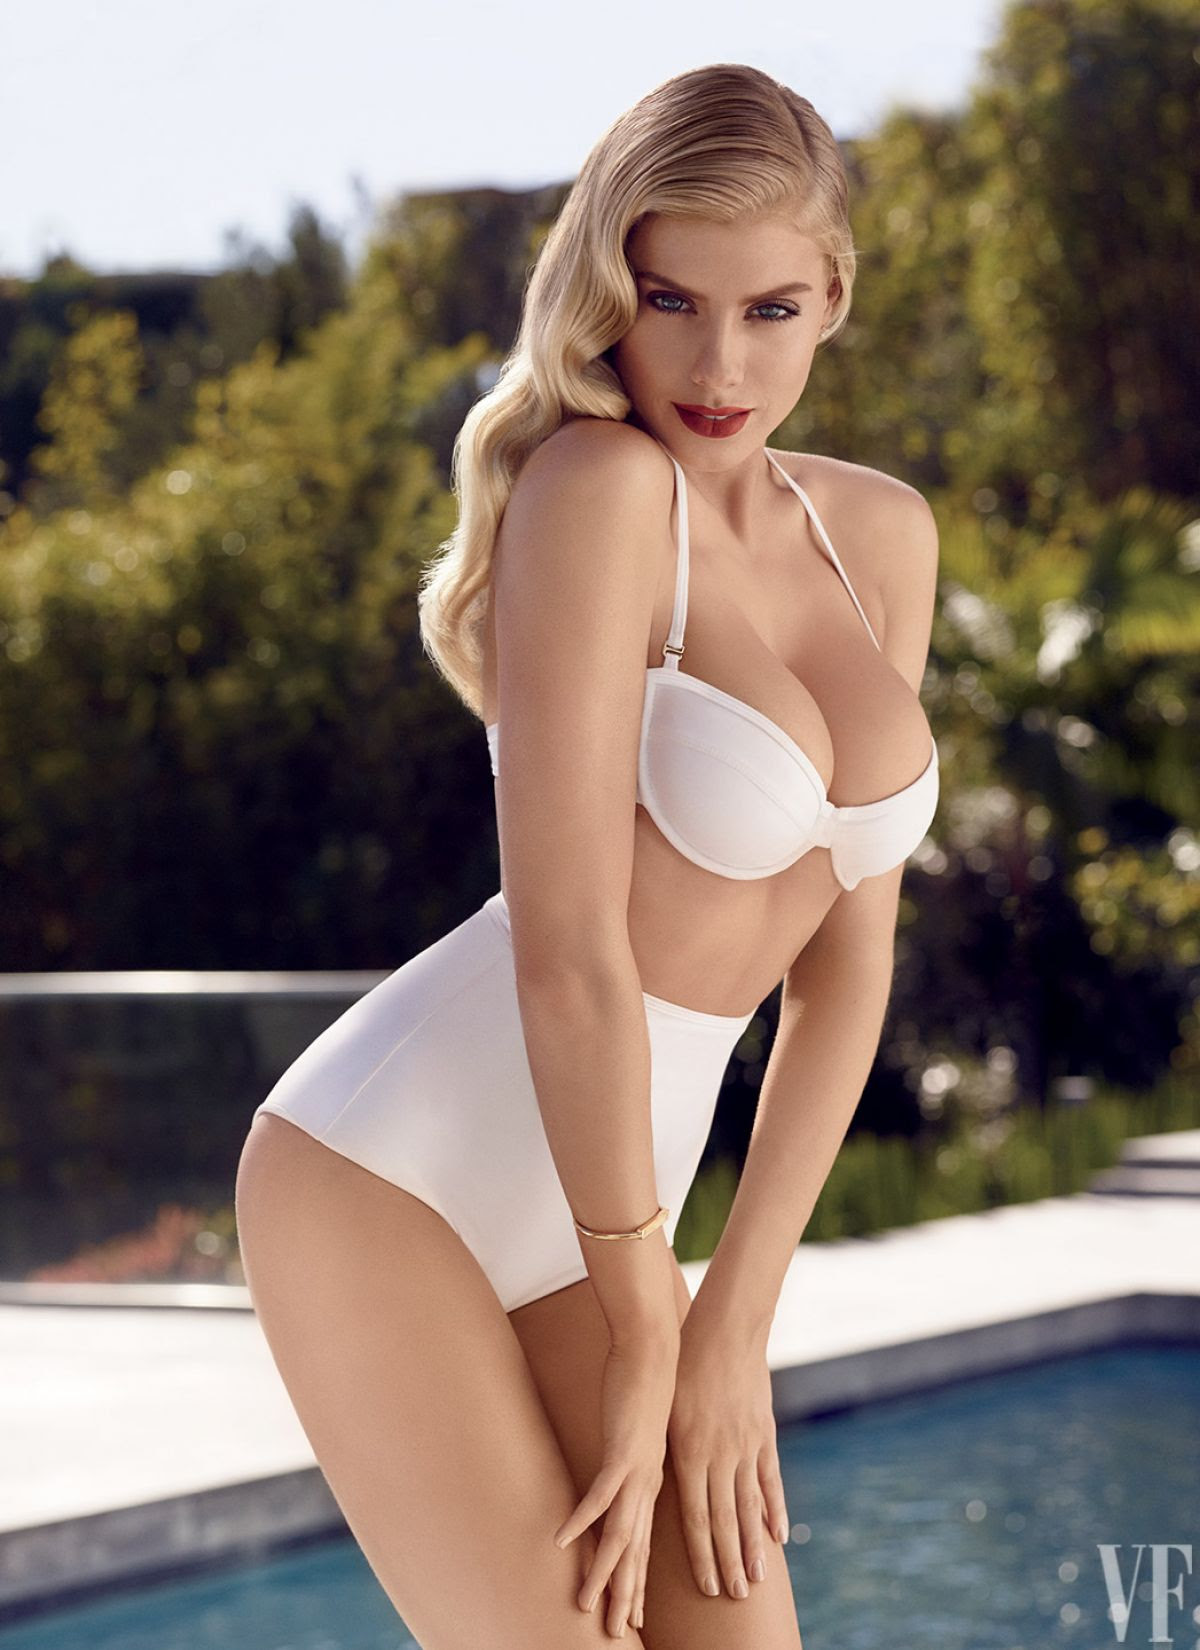 CHARLOTTE MCKINNEY - Vanity Fair Photoshoot